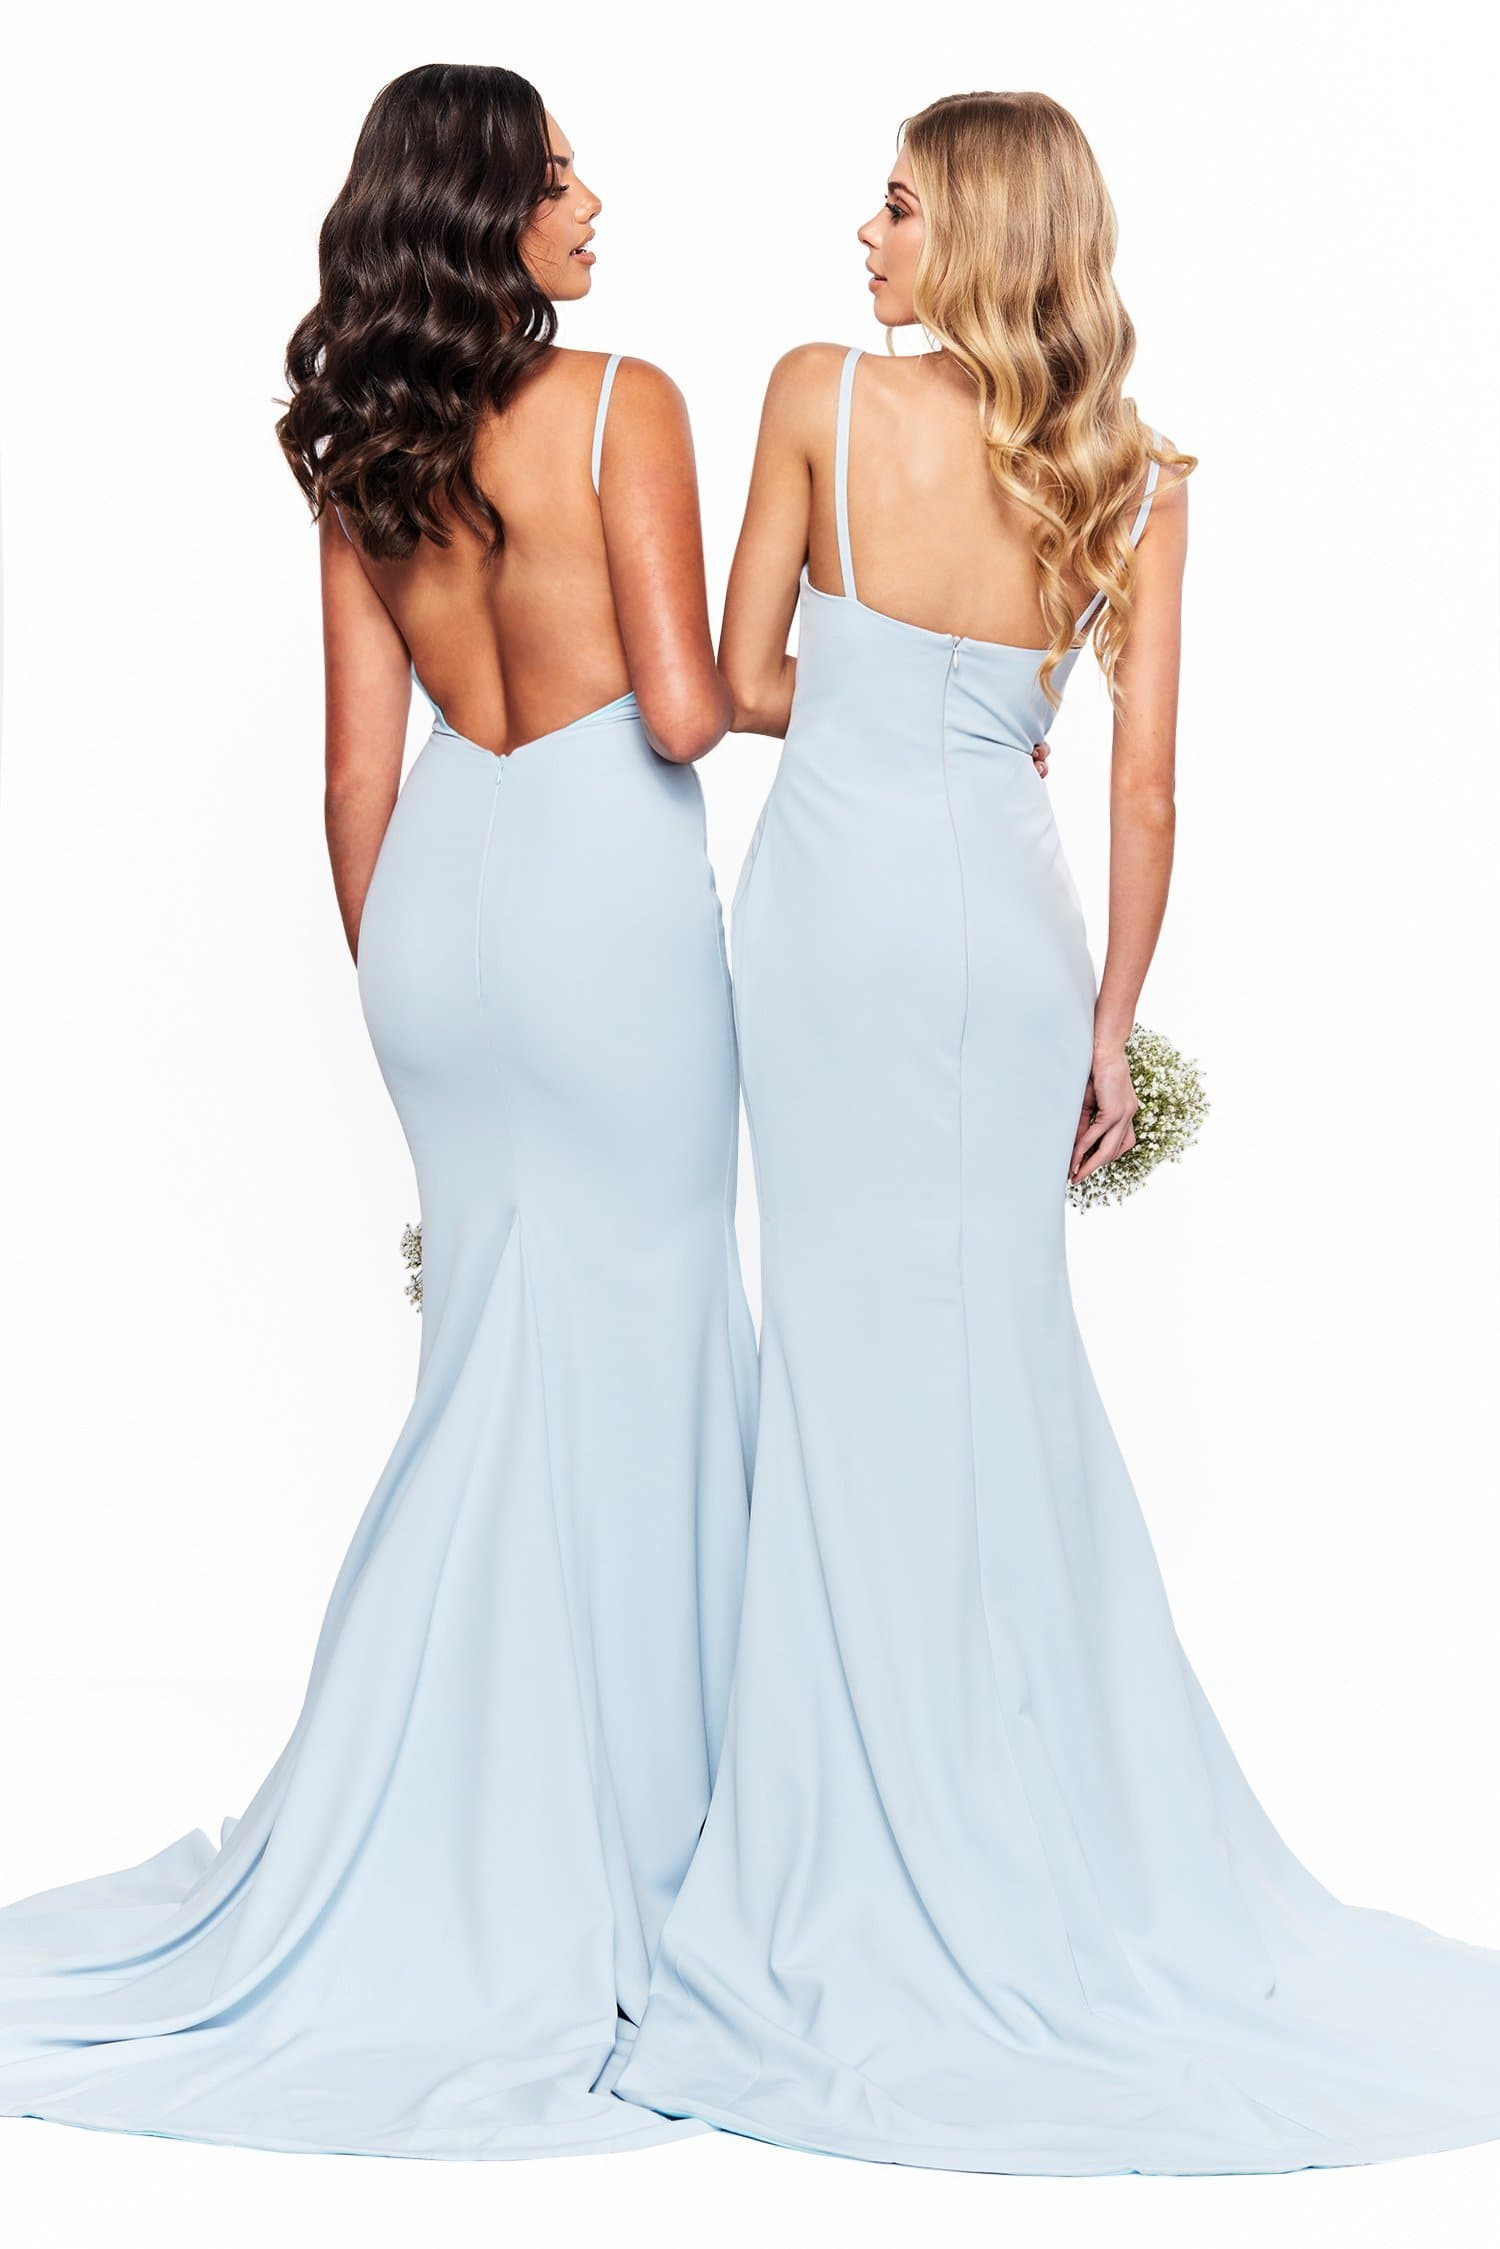 A&N Bridesmaids Imani - Sky Blue Mermaid Ponti Gown with Thin Straps